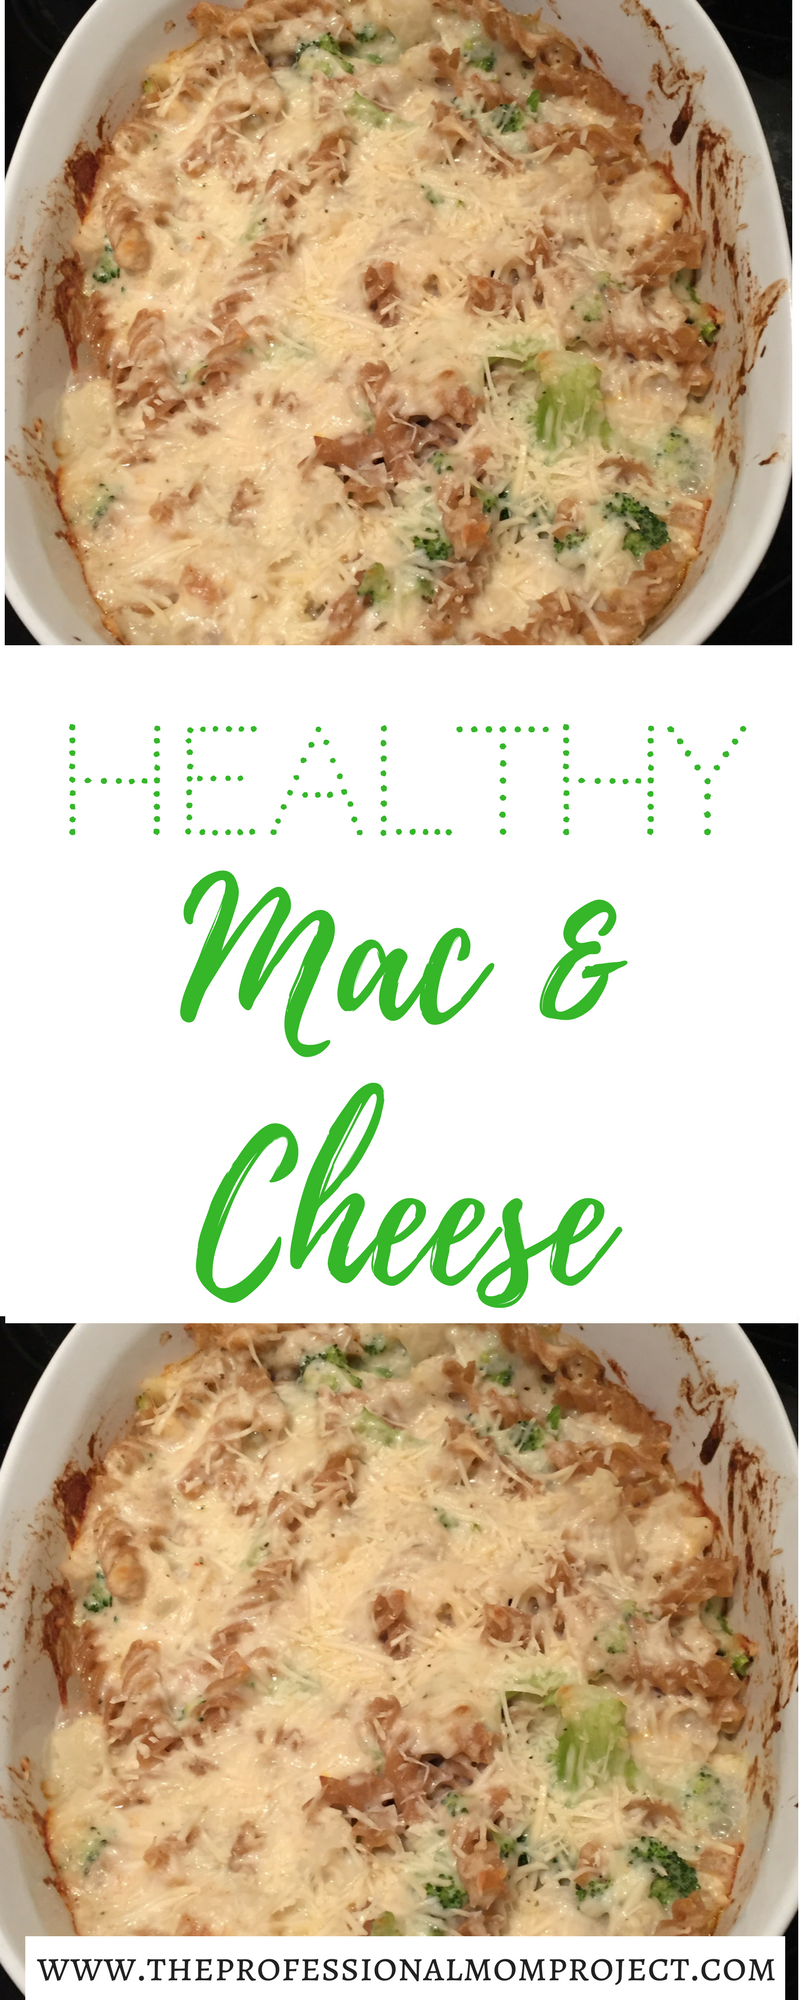 This healthy macaroni and cheese is perfect for a weeknight meal! Enjoy the extra veggies and fiber from the whole wheat pasta, broccoli and cauliflower.